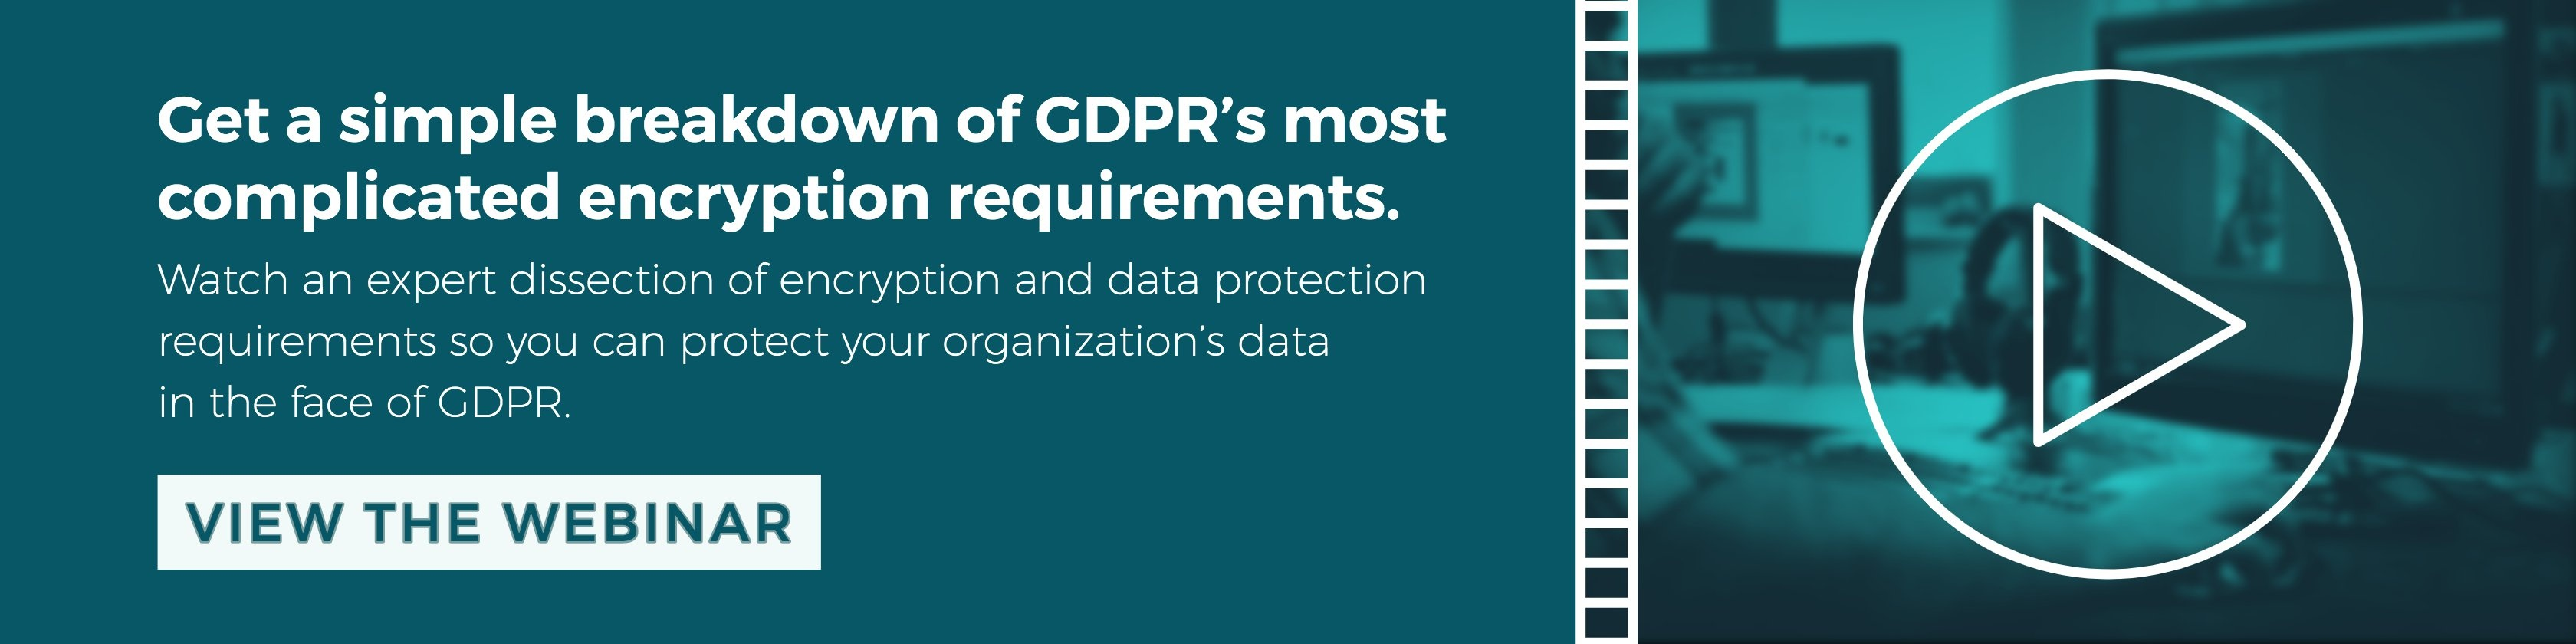 Click here to watch a simple breakdown of GDPR's most complicated encryption requirements.